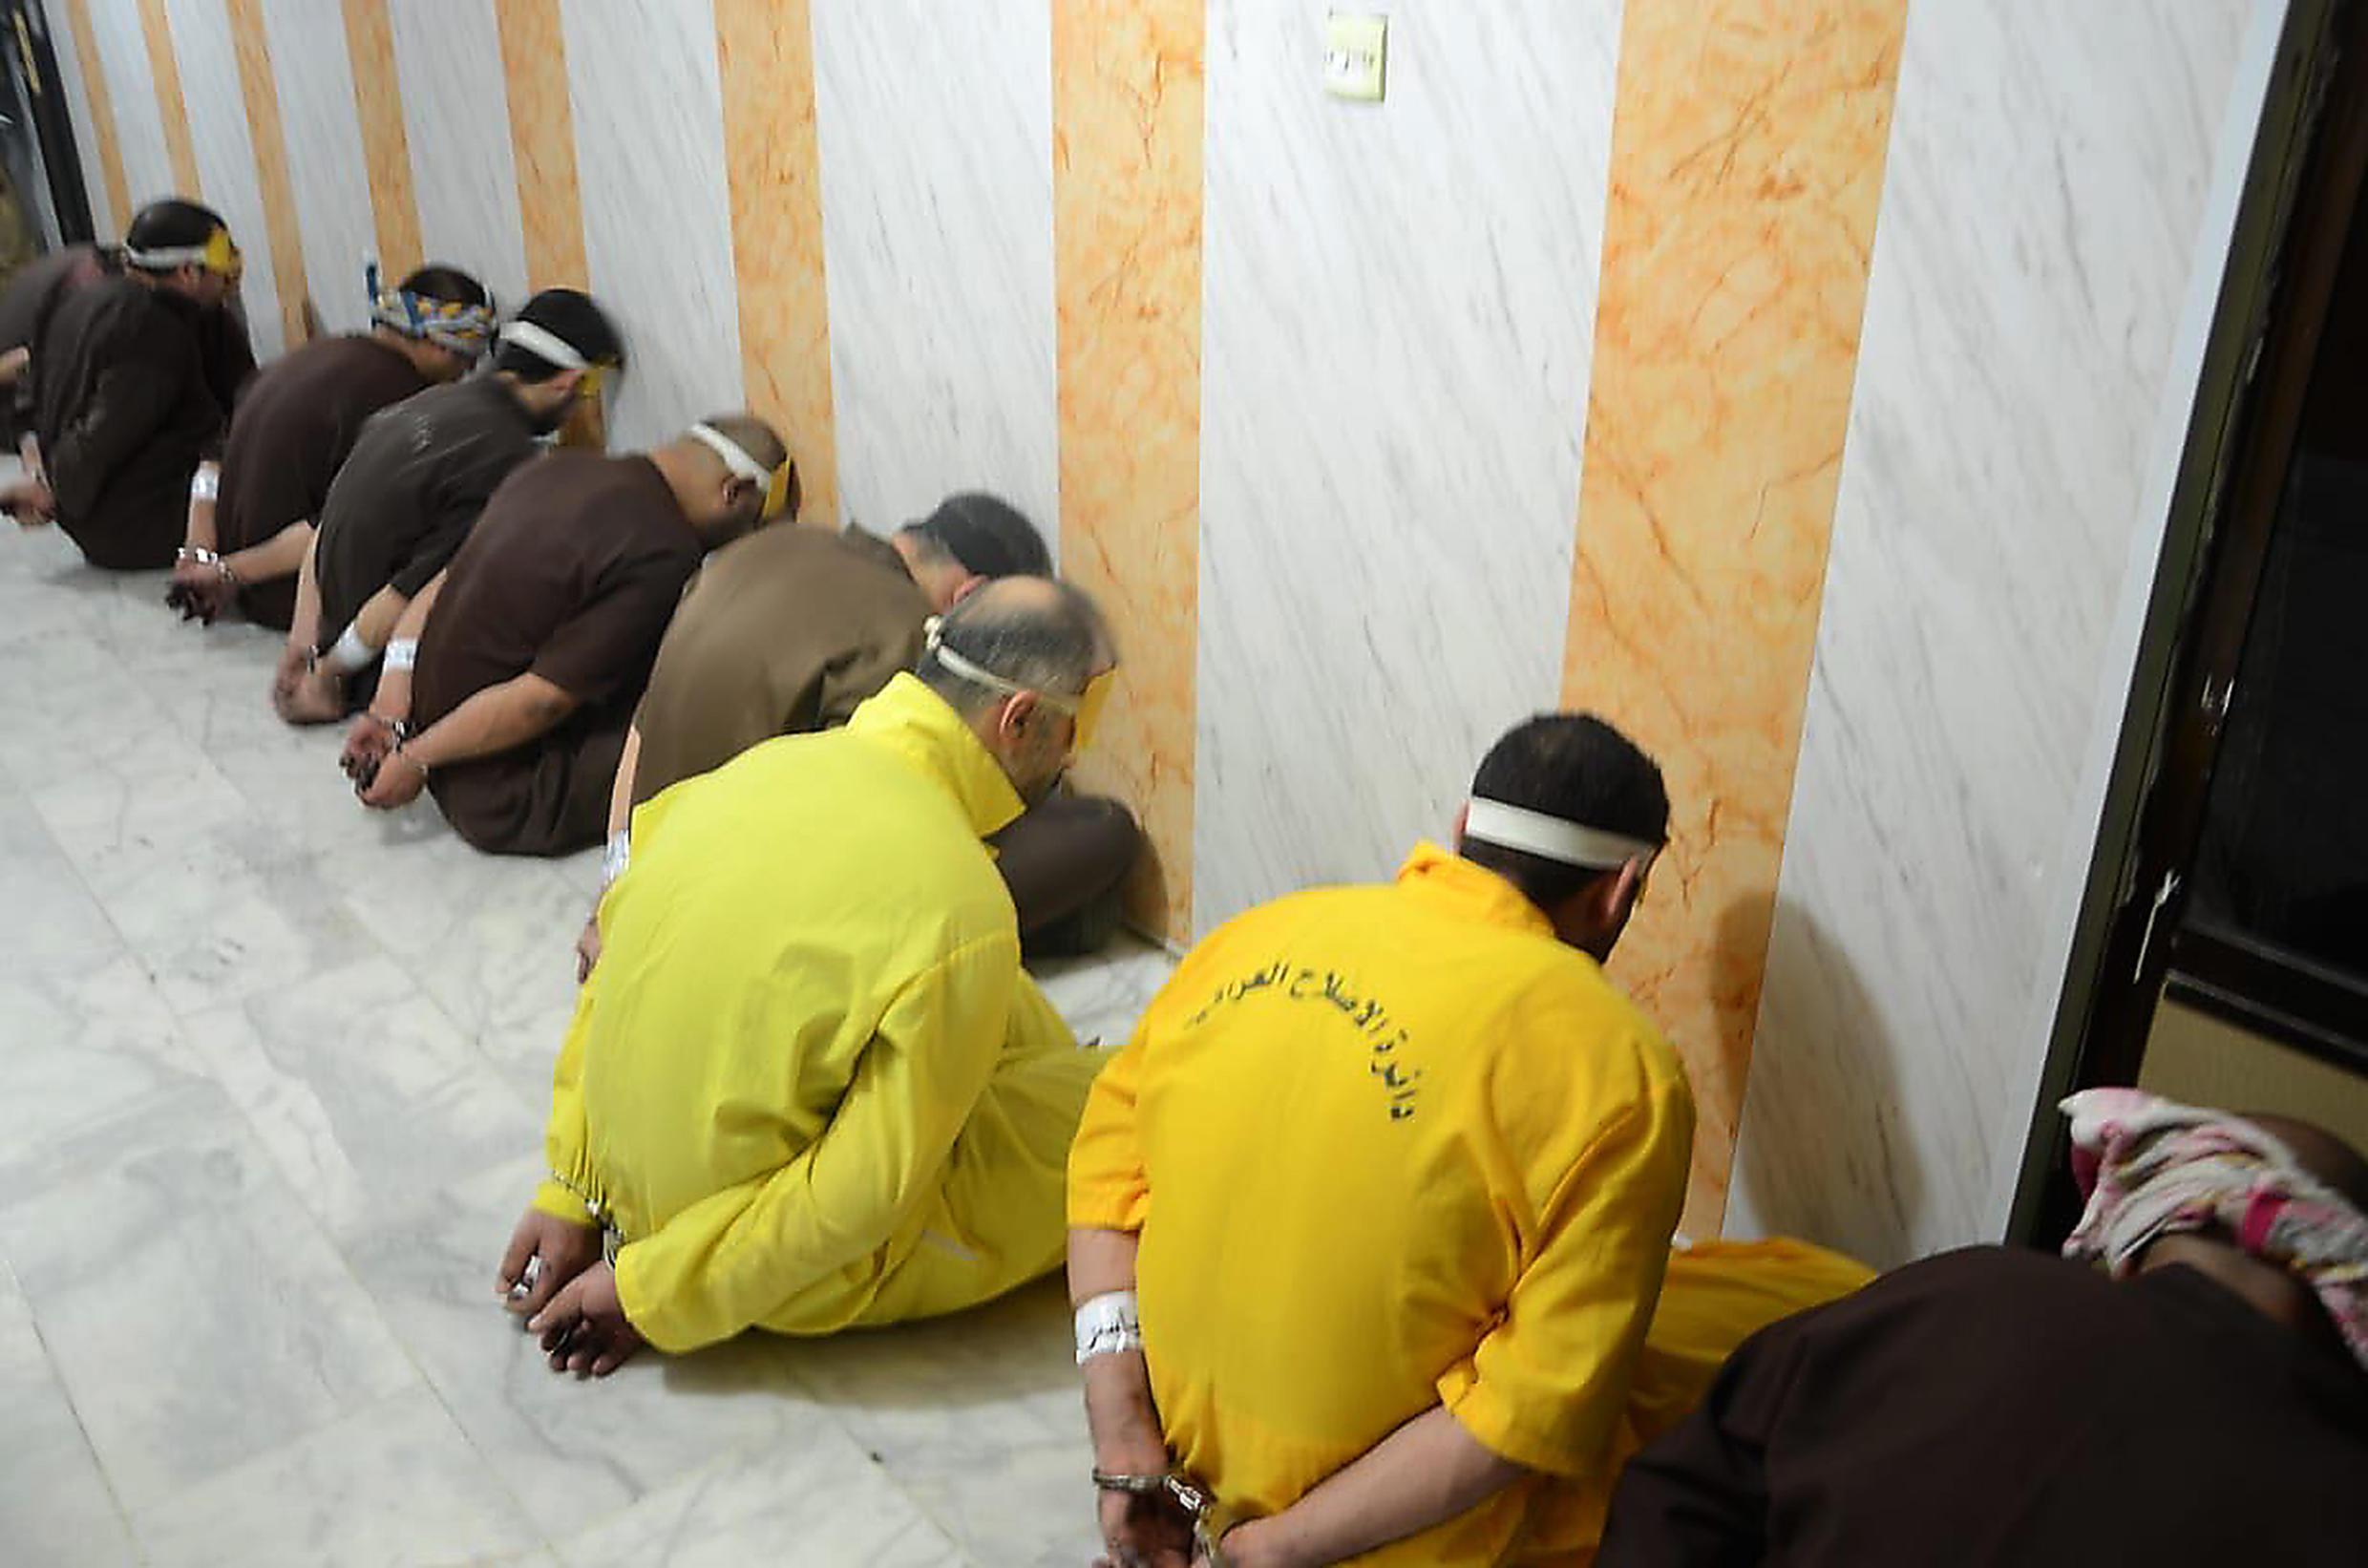 """Iraq on Monday hanged three people for """"terrorism"""": this 2018 photograph released by the Iraqi Justice Ministry shows Islamic State group members condemned to death"""